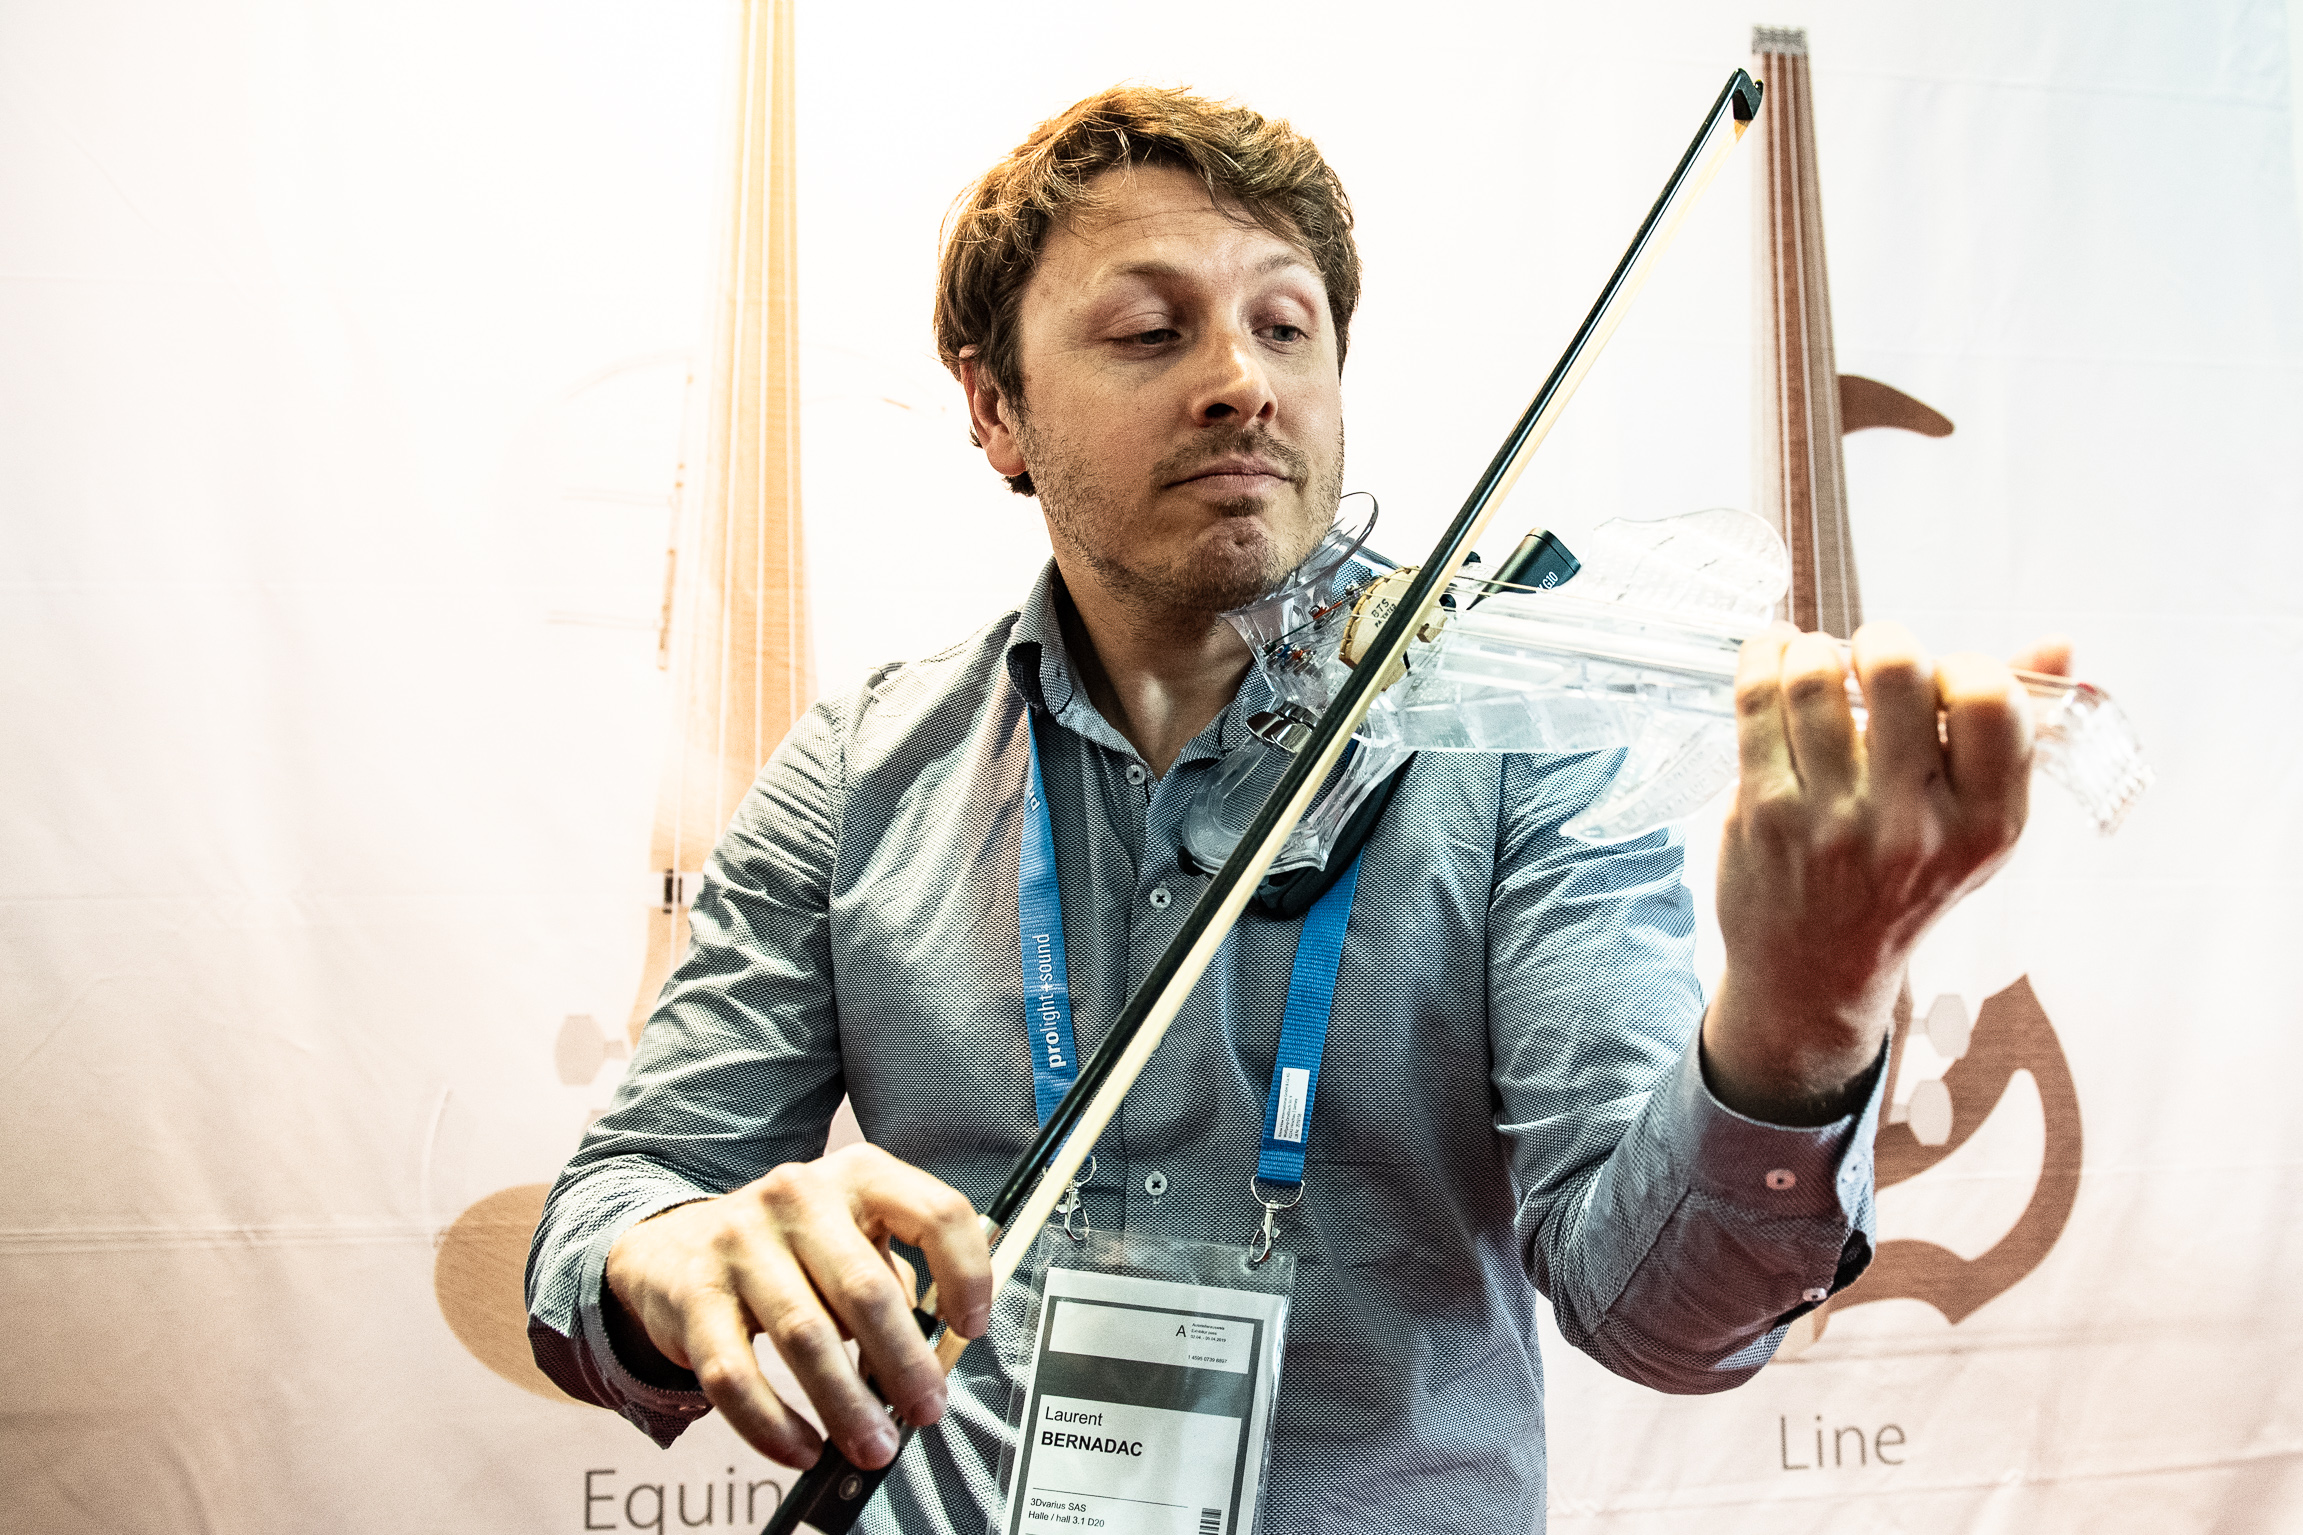 Laurent Bernadac, french violinist, creator of the 3DVarius